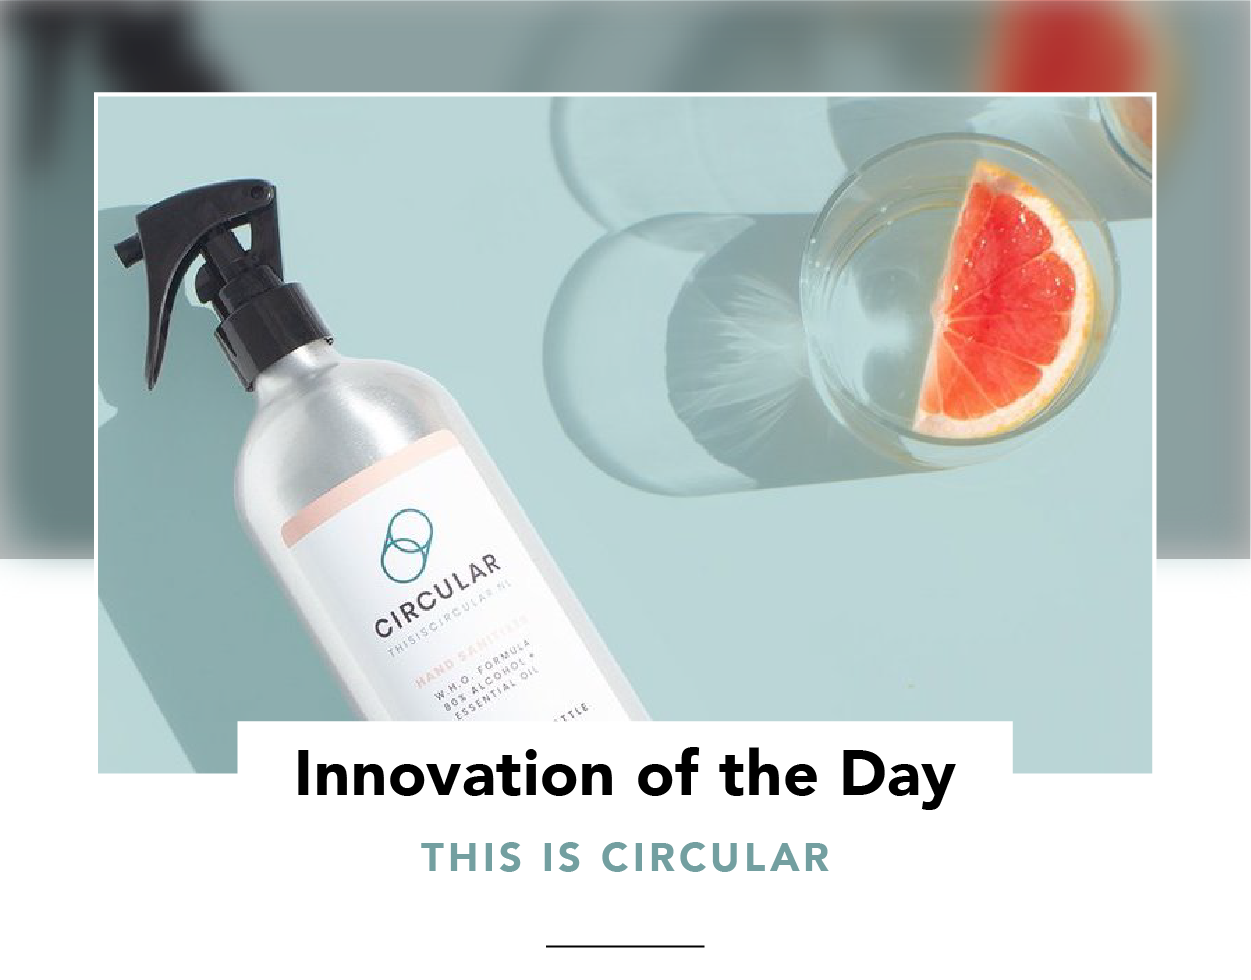 Cleaning product in a circular bottle (and a glass of water)